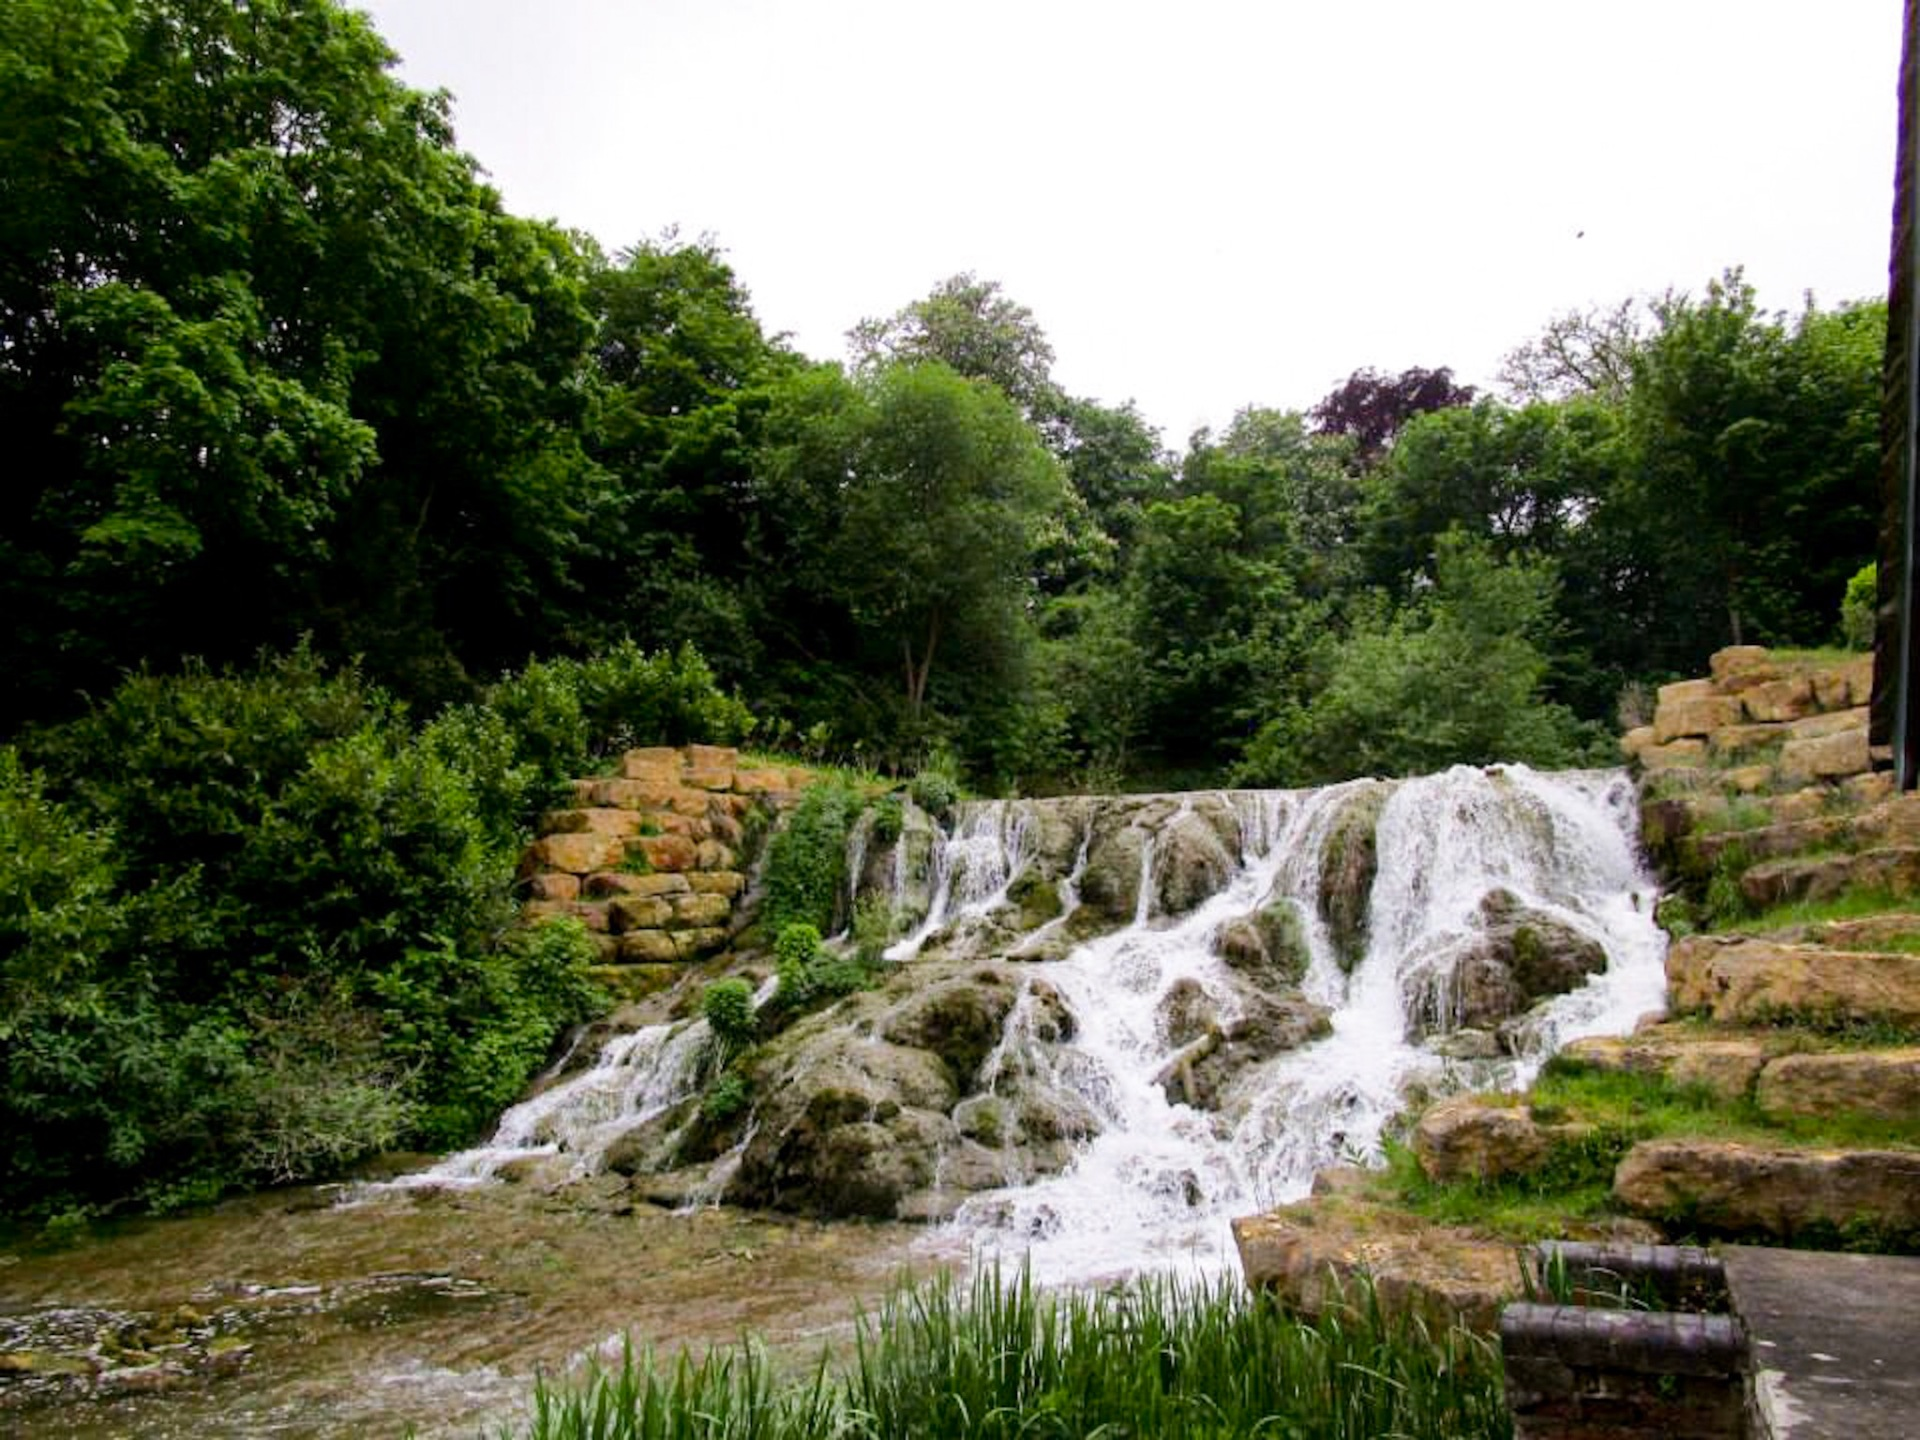 Waterfall at Blenheim palace